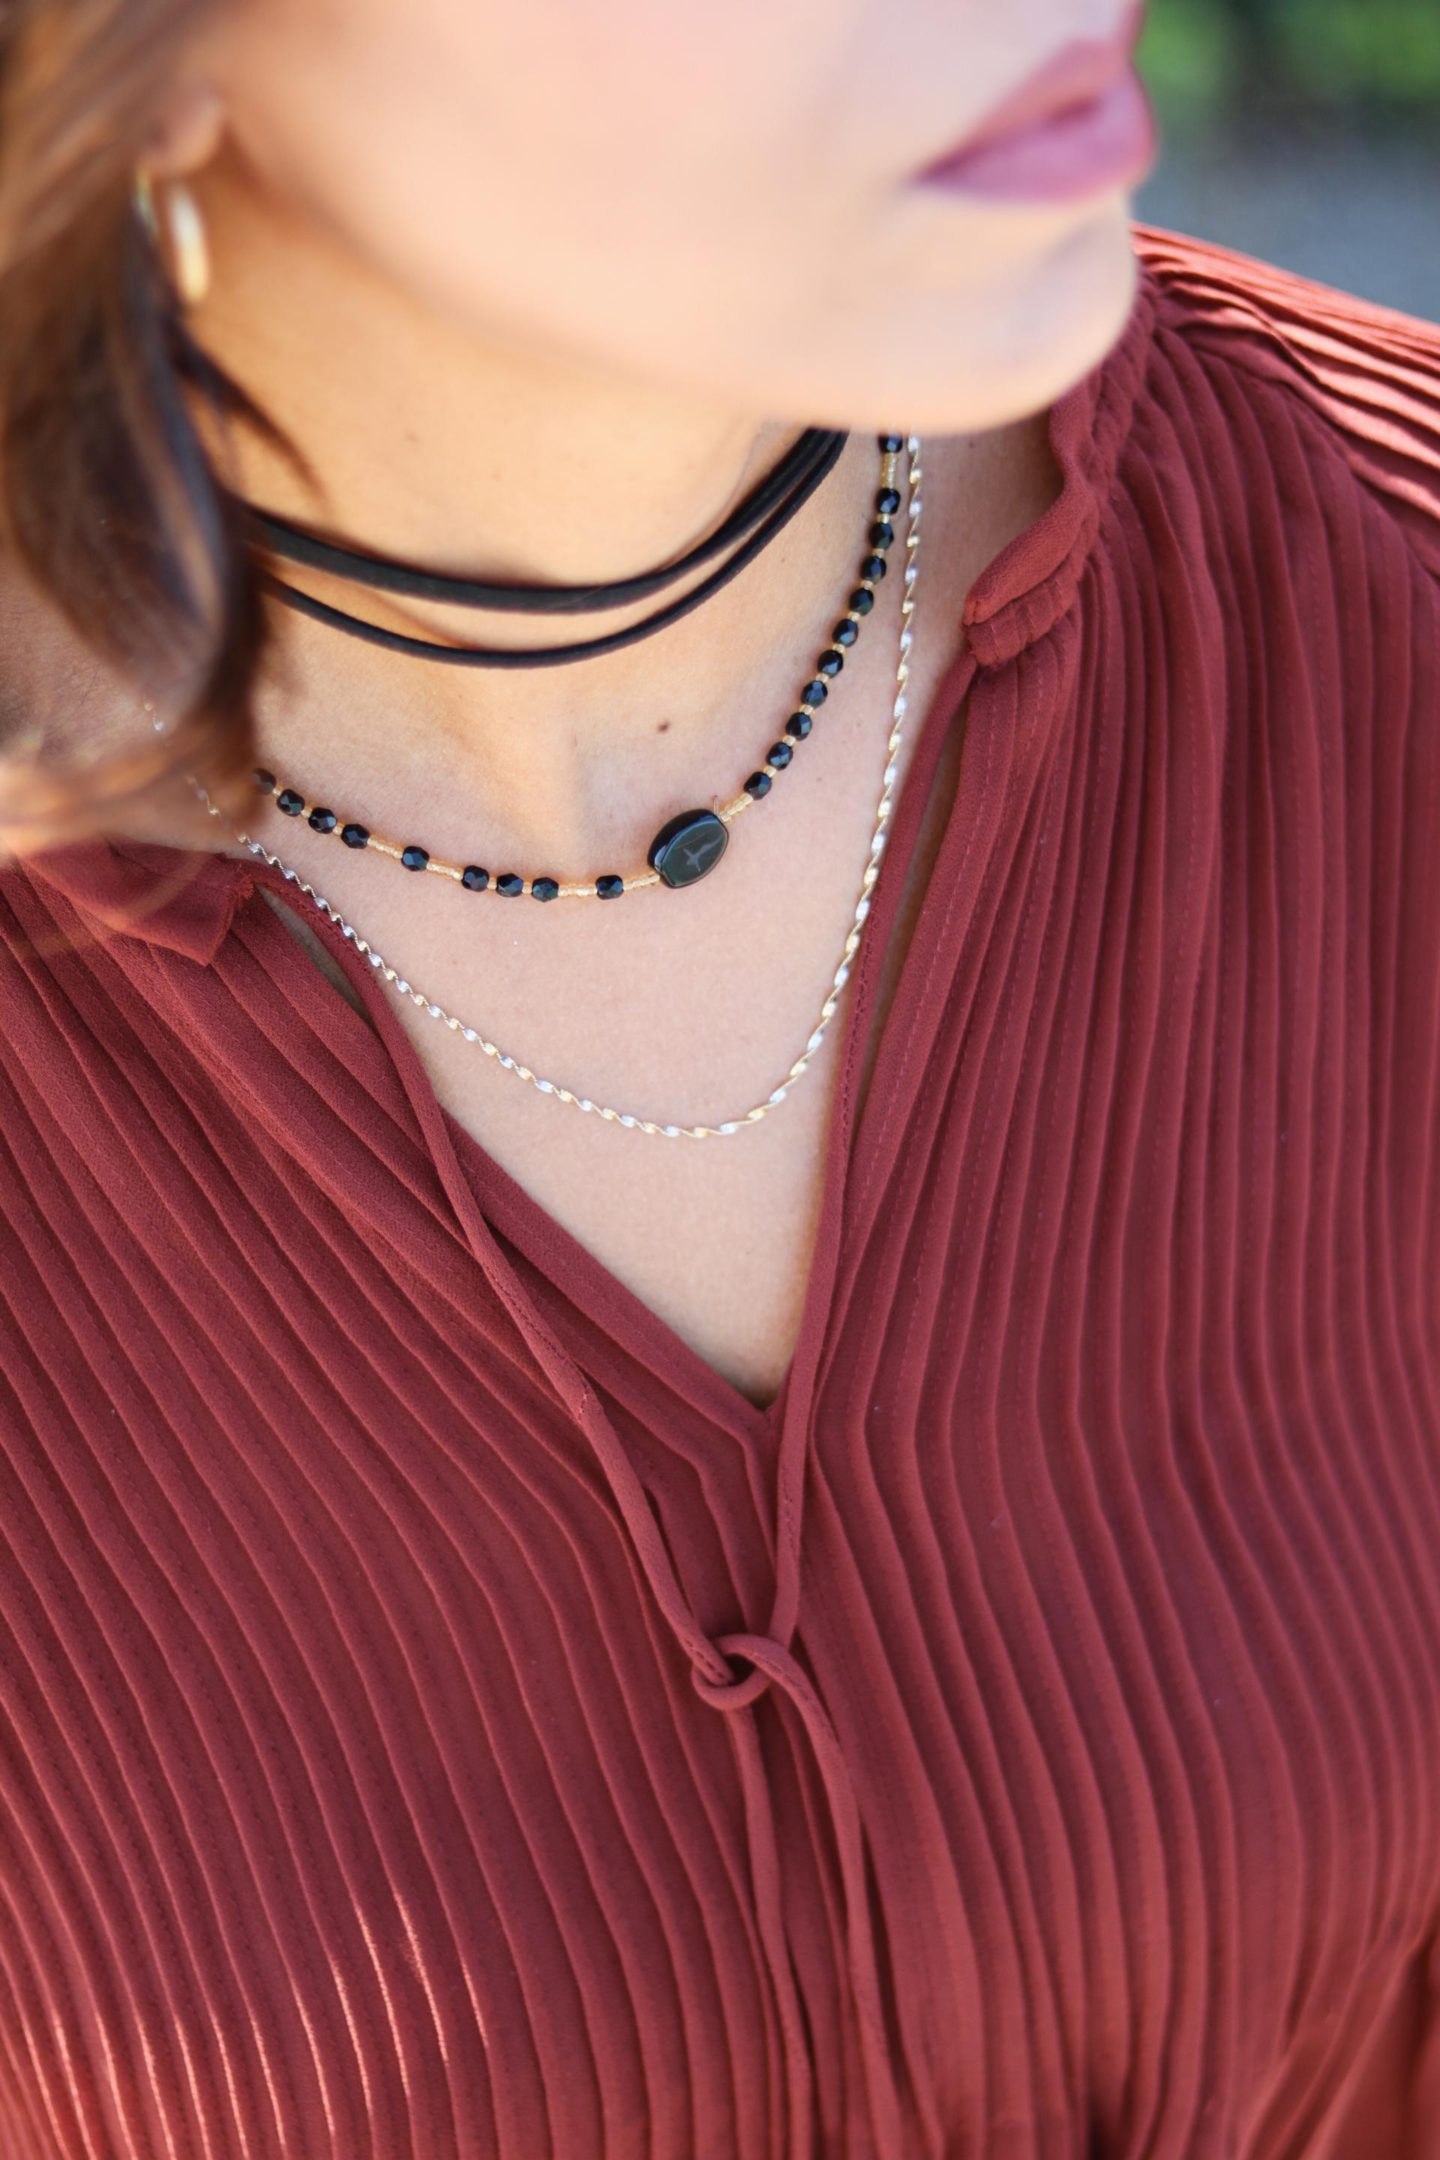 This Season's Gold // Layered chokers